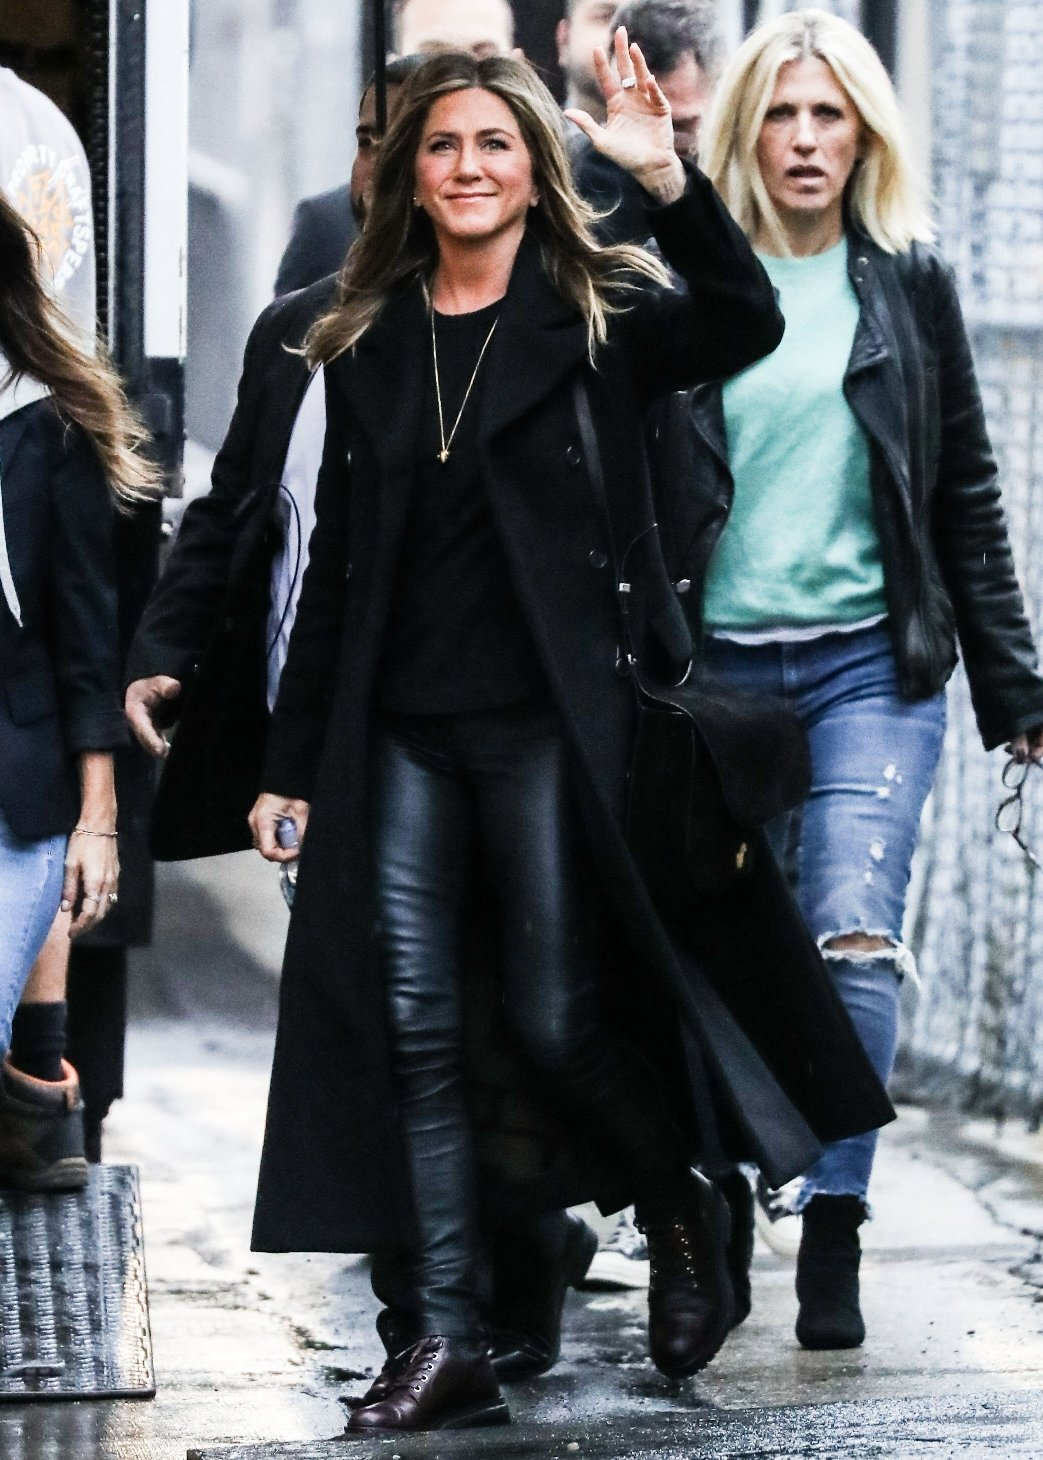 Hollywood, CA  - Actress Jennifer Aniston is seen arriving for her appearance on 'Jimmy Kimmel Live!' in Hollywood. Jennifer looked stylish in a black trench coat, black sweater, black leather pants and a pair of black boots for her appearance.  Pictured: Jennifer Aniston  BACKGRID USA 5 DECEMBER 2018, Image: 400699076, License: Rights-managed, Restrictions: , Model Release: no, Credit line: Profimedia, AKM-GSI